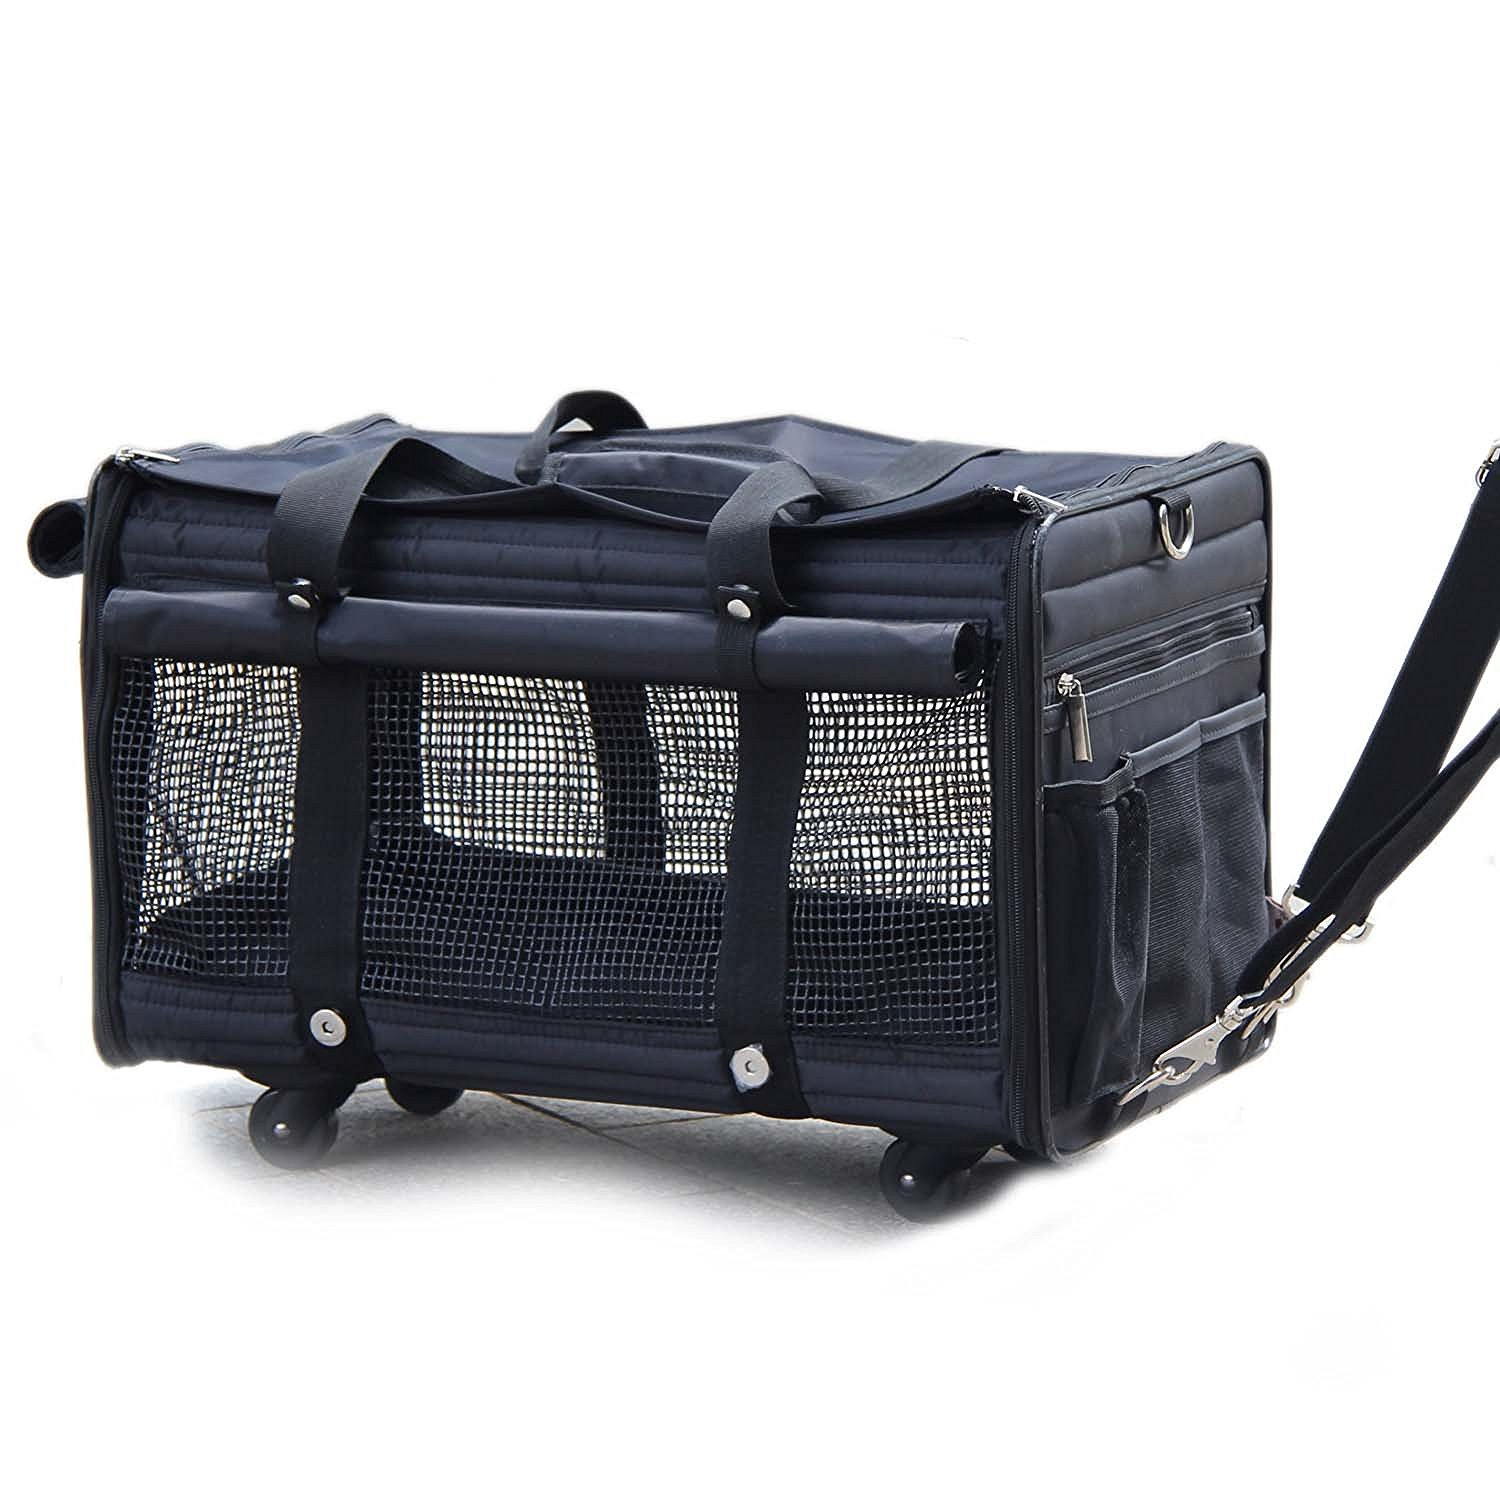 Deluxe Black Soft Sided Pet Carrier on Wheels-Perfect for Cats or Small Dogs